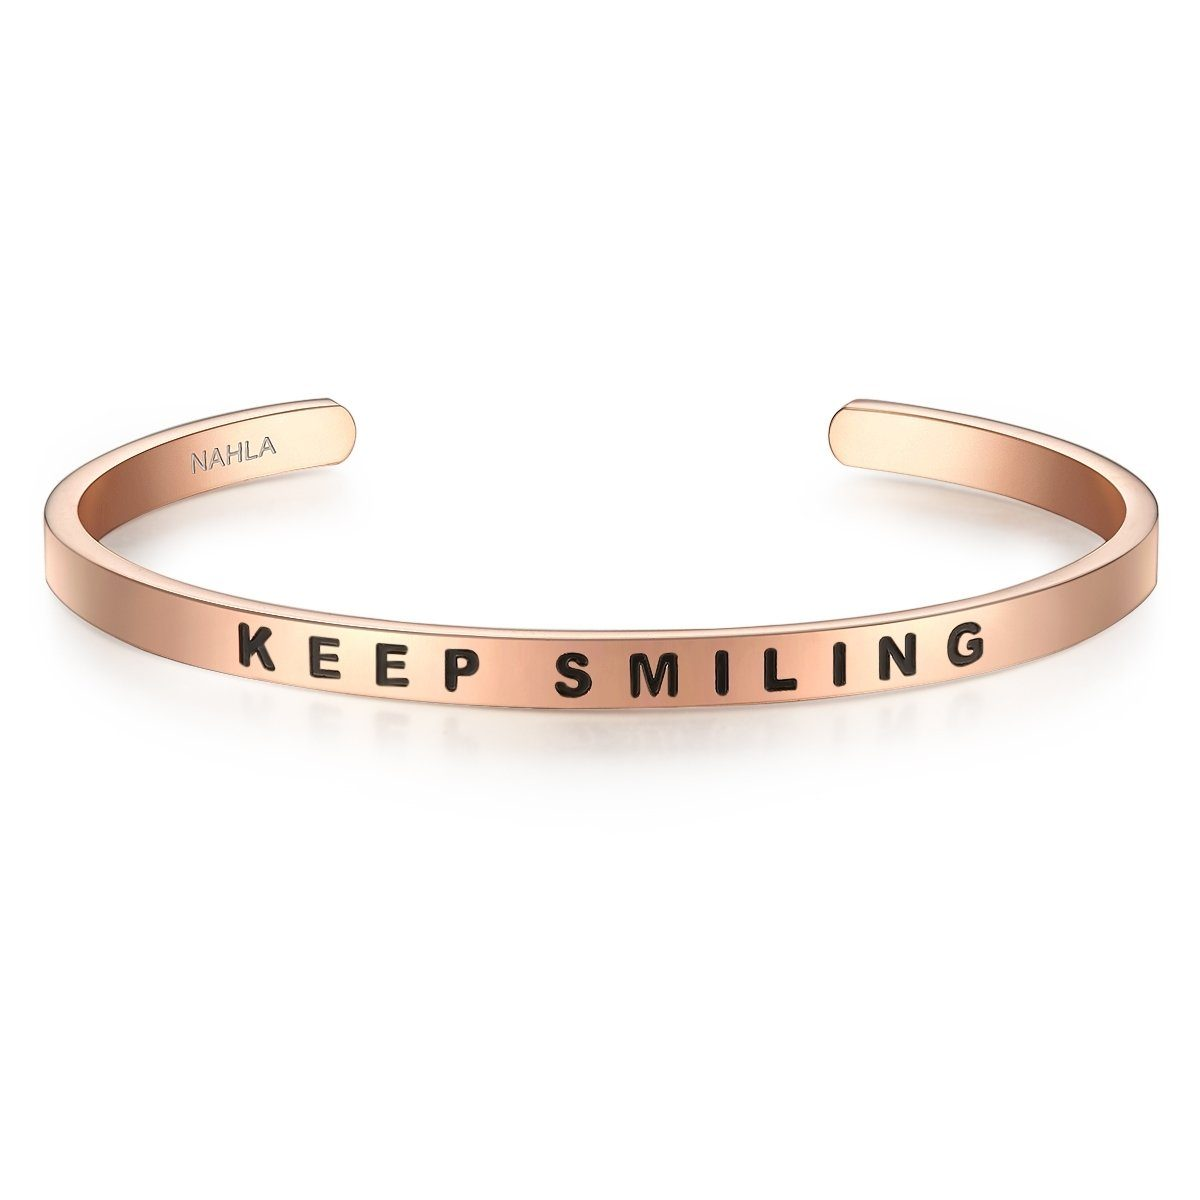 Nahla Jewels Armreif »X365« mit Slogan KEEP SMILING